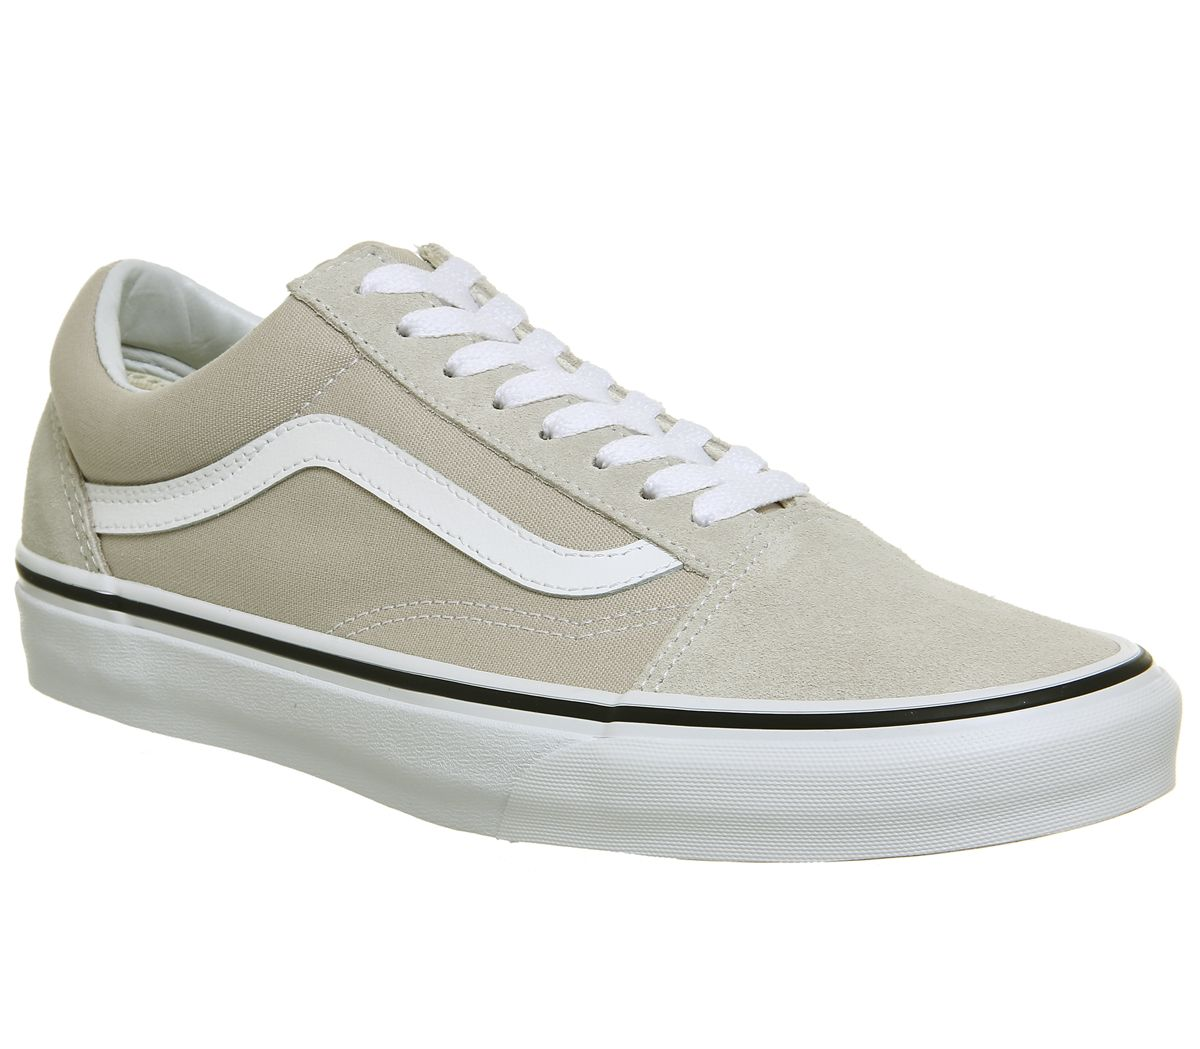 separation shoes 91b4f d8874 Vans Old Skool Trainers Silver White - Unisex Sports